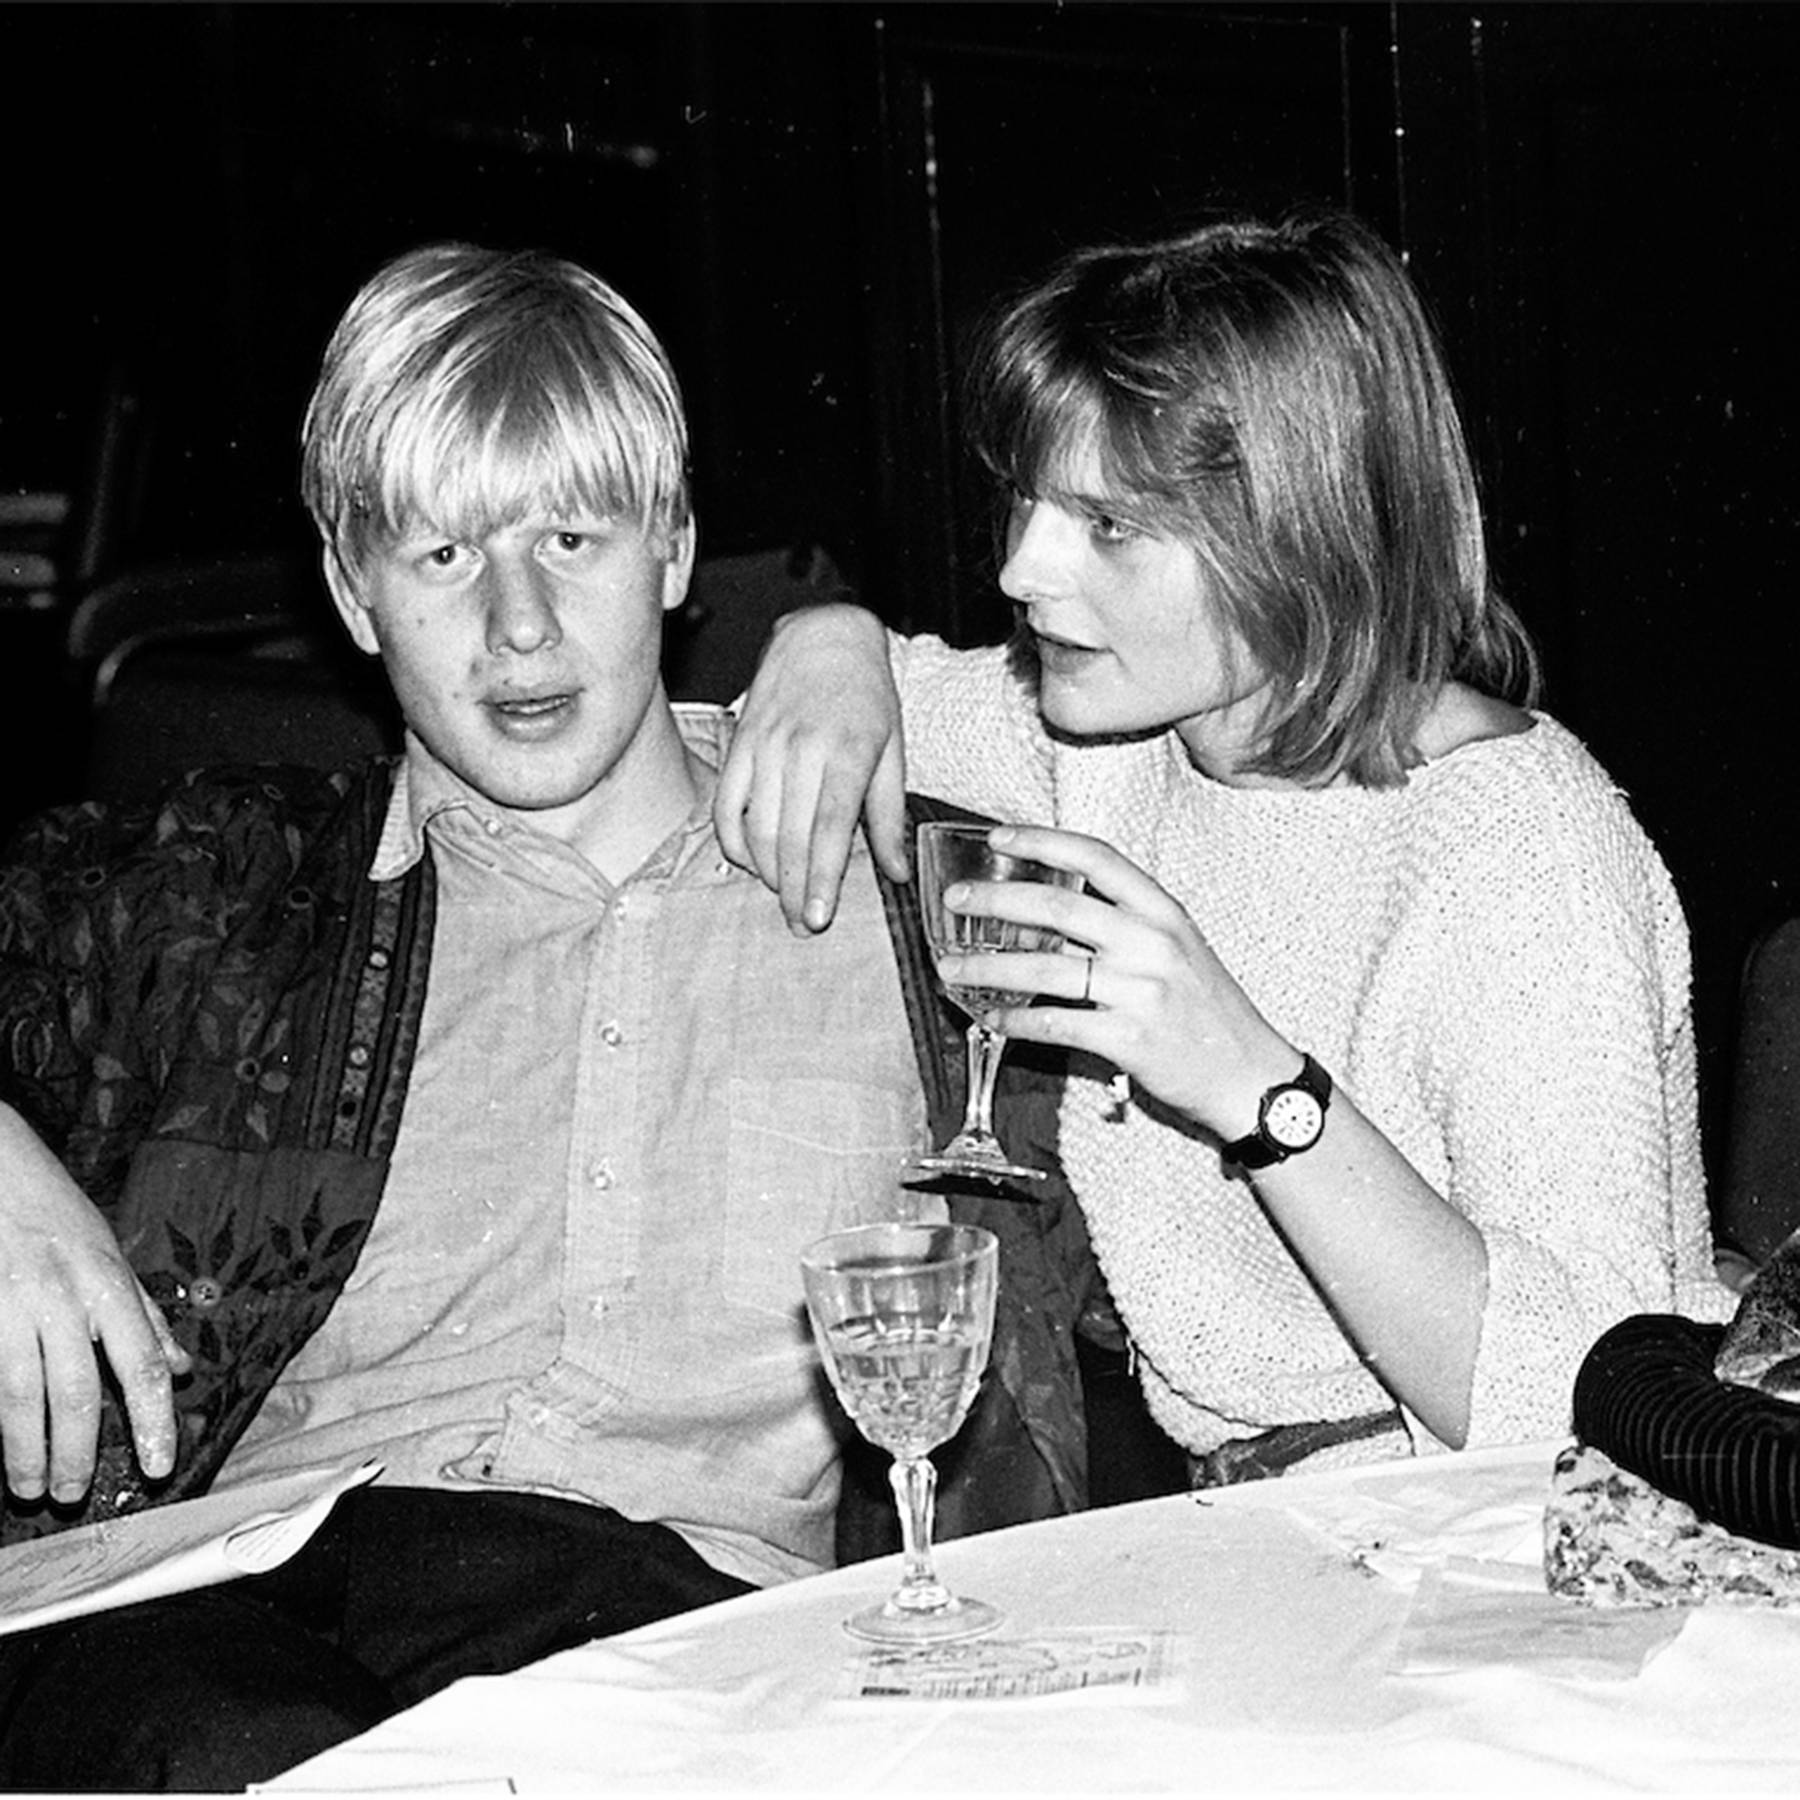 This image shows a young Boris Johnson with his first wife, Allegra Mostyn-Owen as they hold drinks. Boris gazes at the camera as Allegra speaks in his ear.